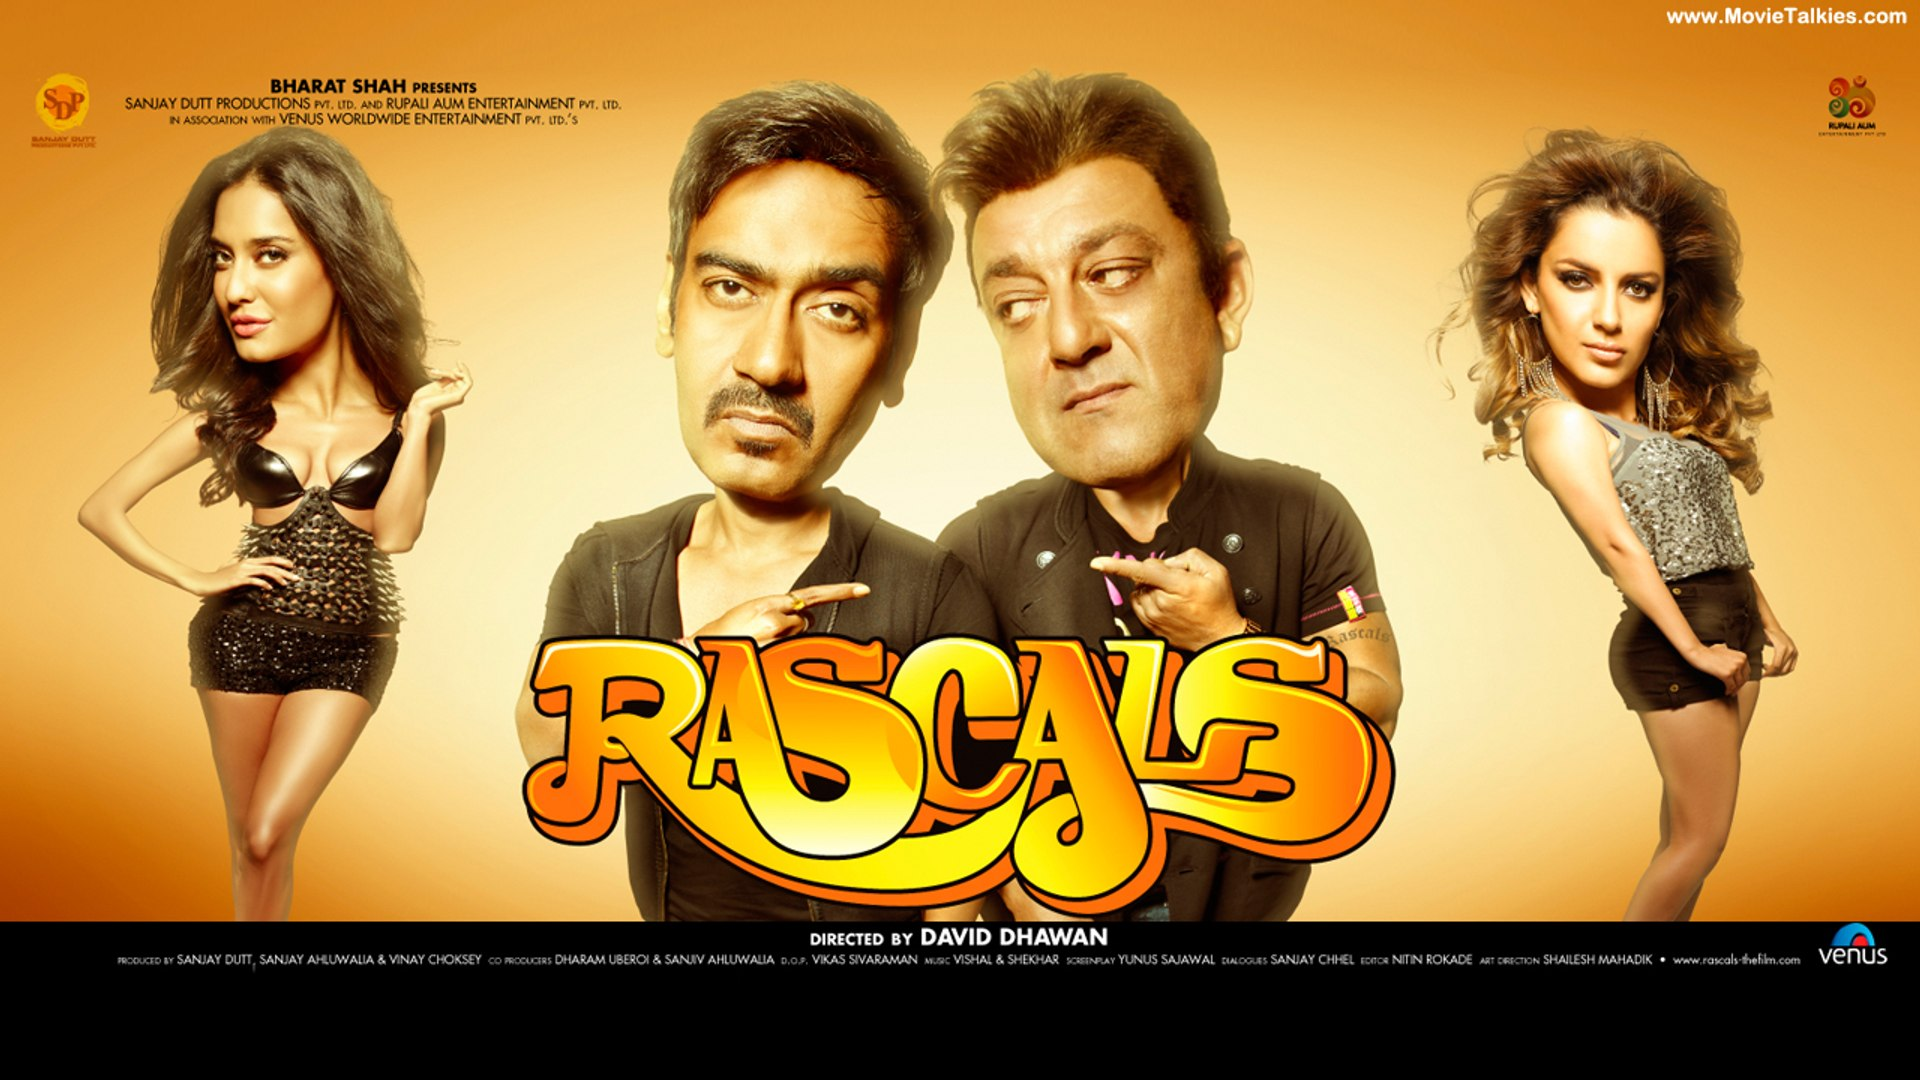 Rascals  Hindi Movies Full Movie  ,Ajay Devgan Full Movies  Latest Bollywood Full Movies PART 02